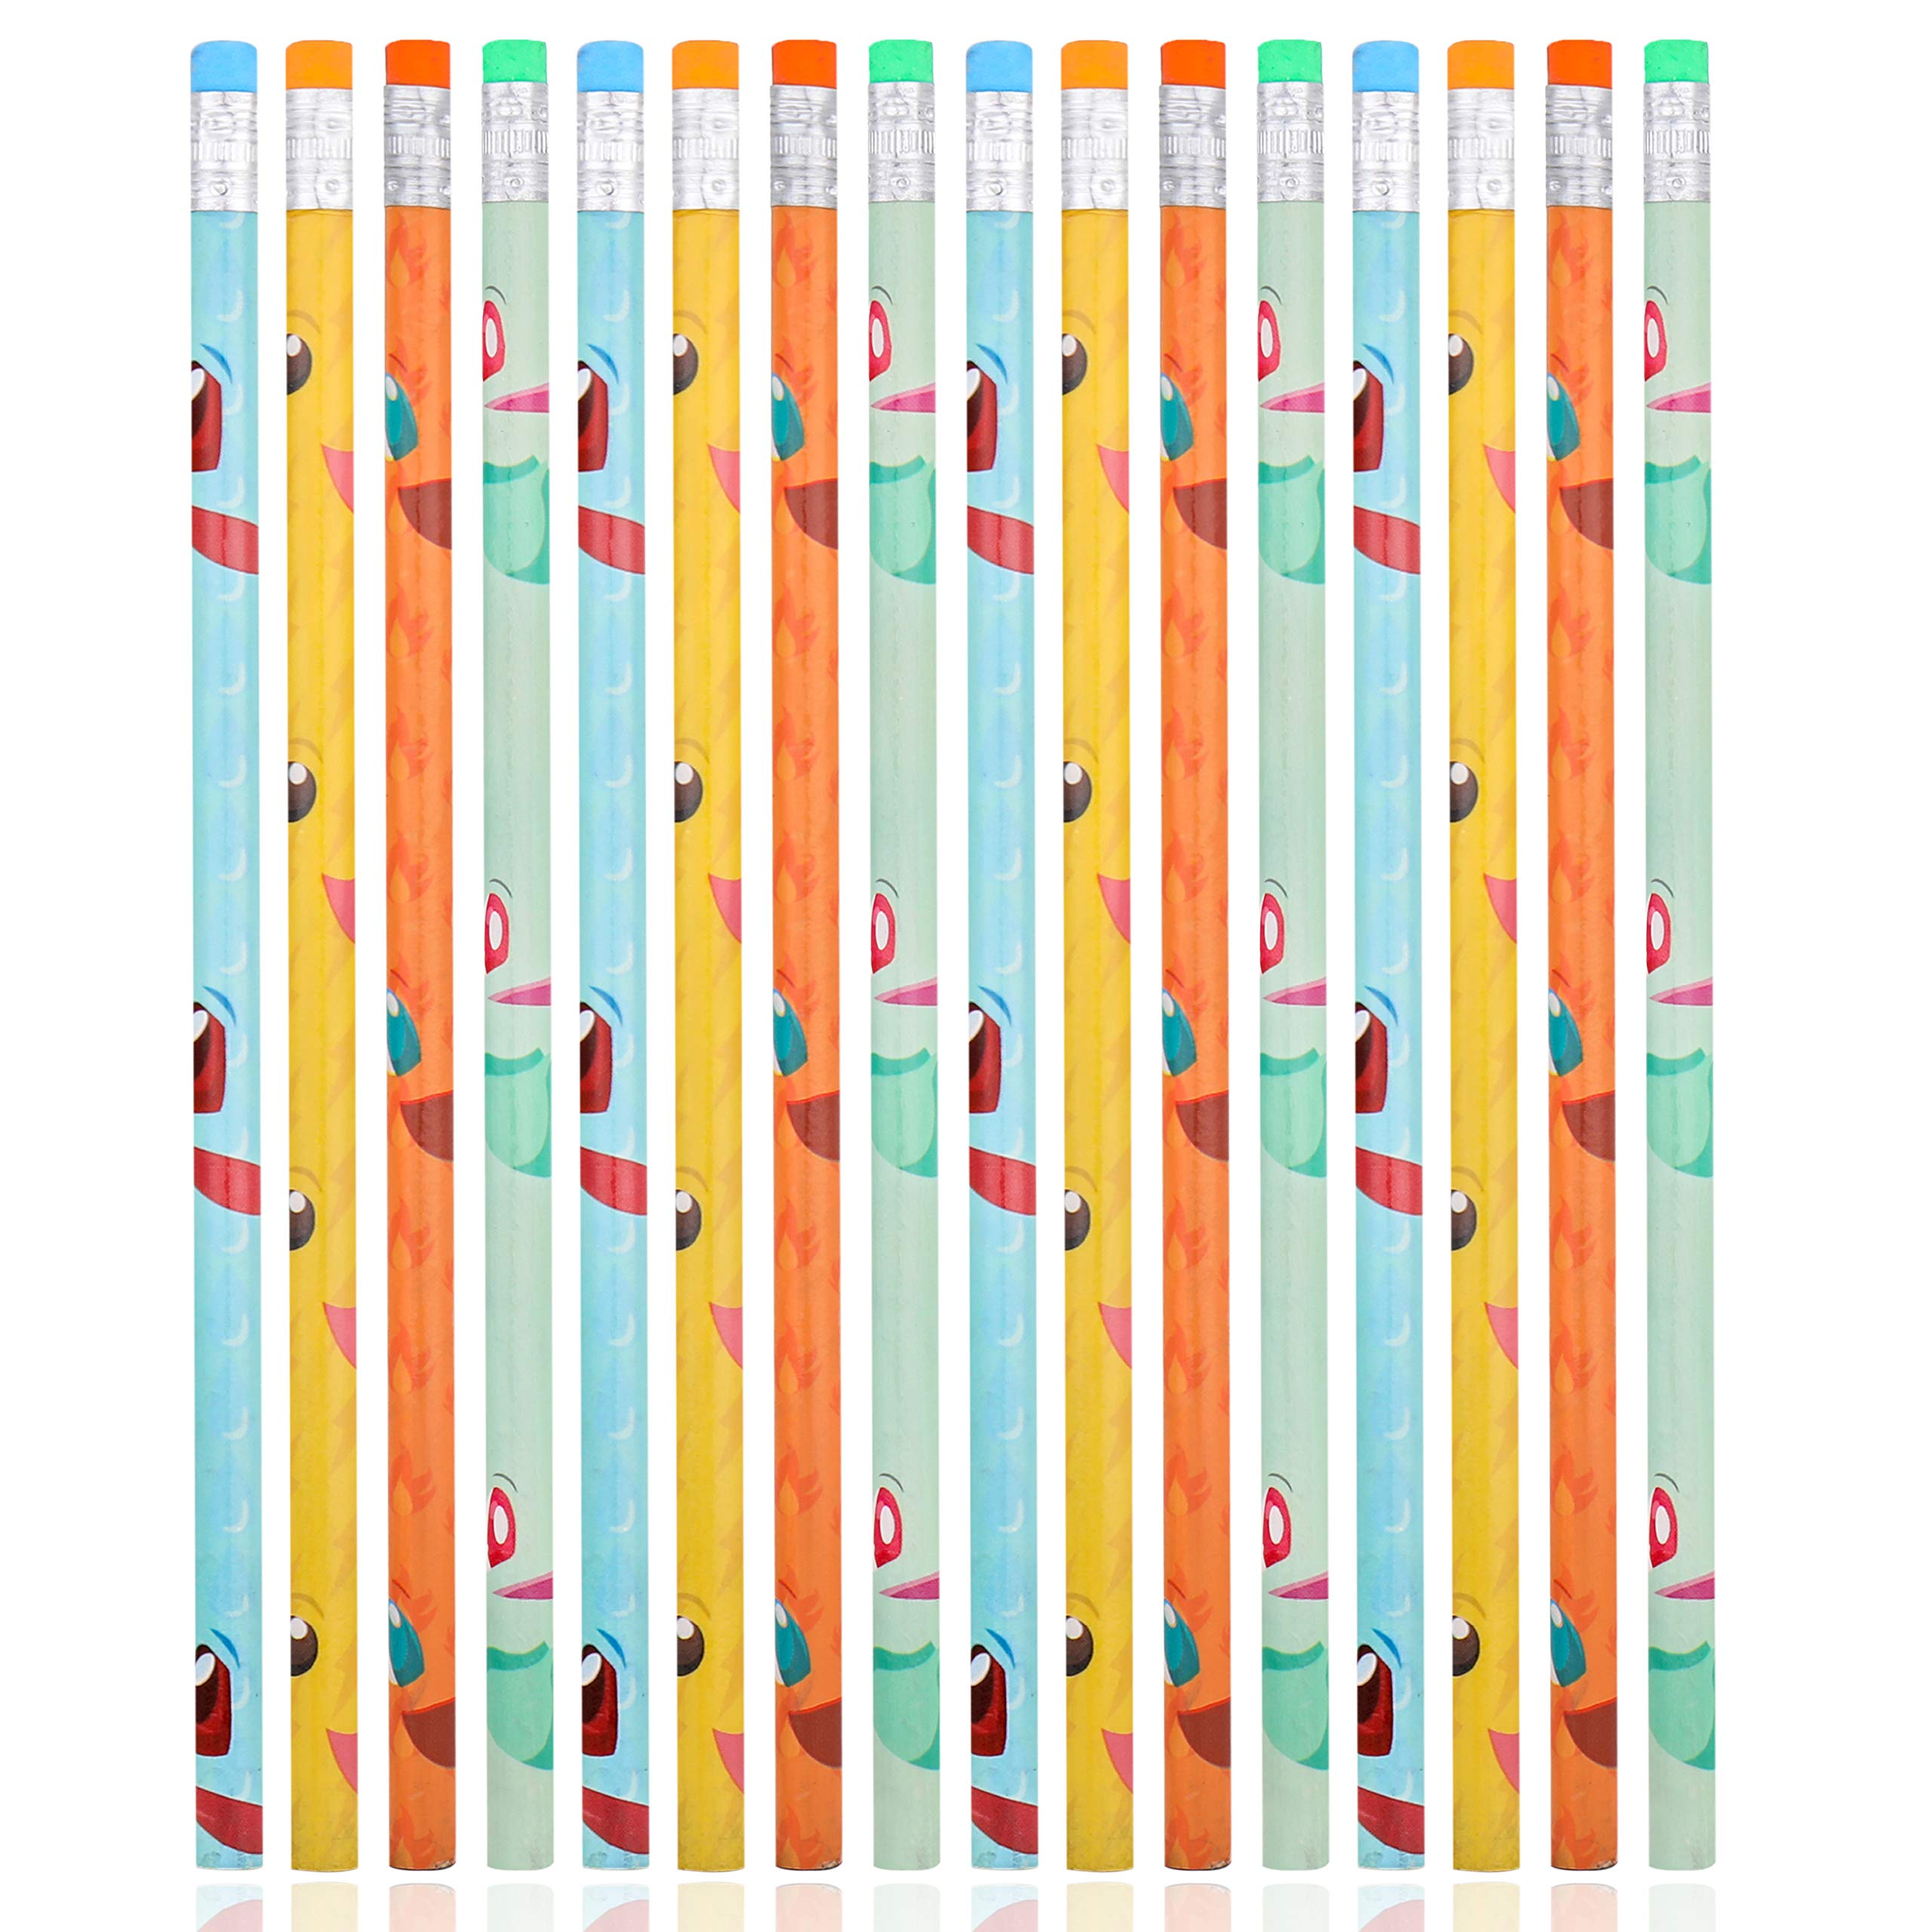 Totem World Pencils 48 Ct. - Inspired Pikachu Charmander Squirtle Bulbasaur Number 2 Pencils - Awesome Back-to-School Presents, Classroom Rewards, and Kids Party Favors - Perfect for Pokemon Fans